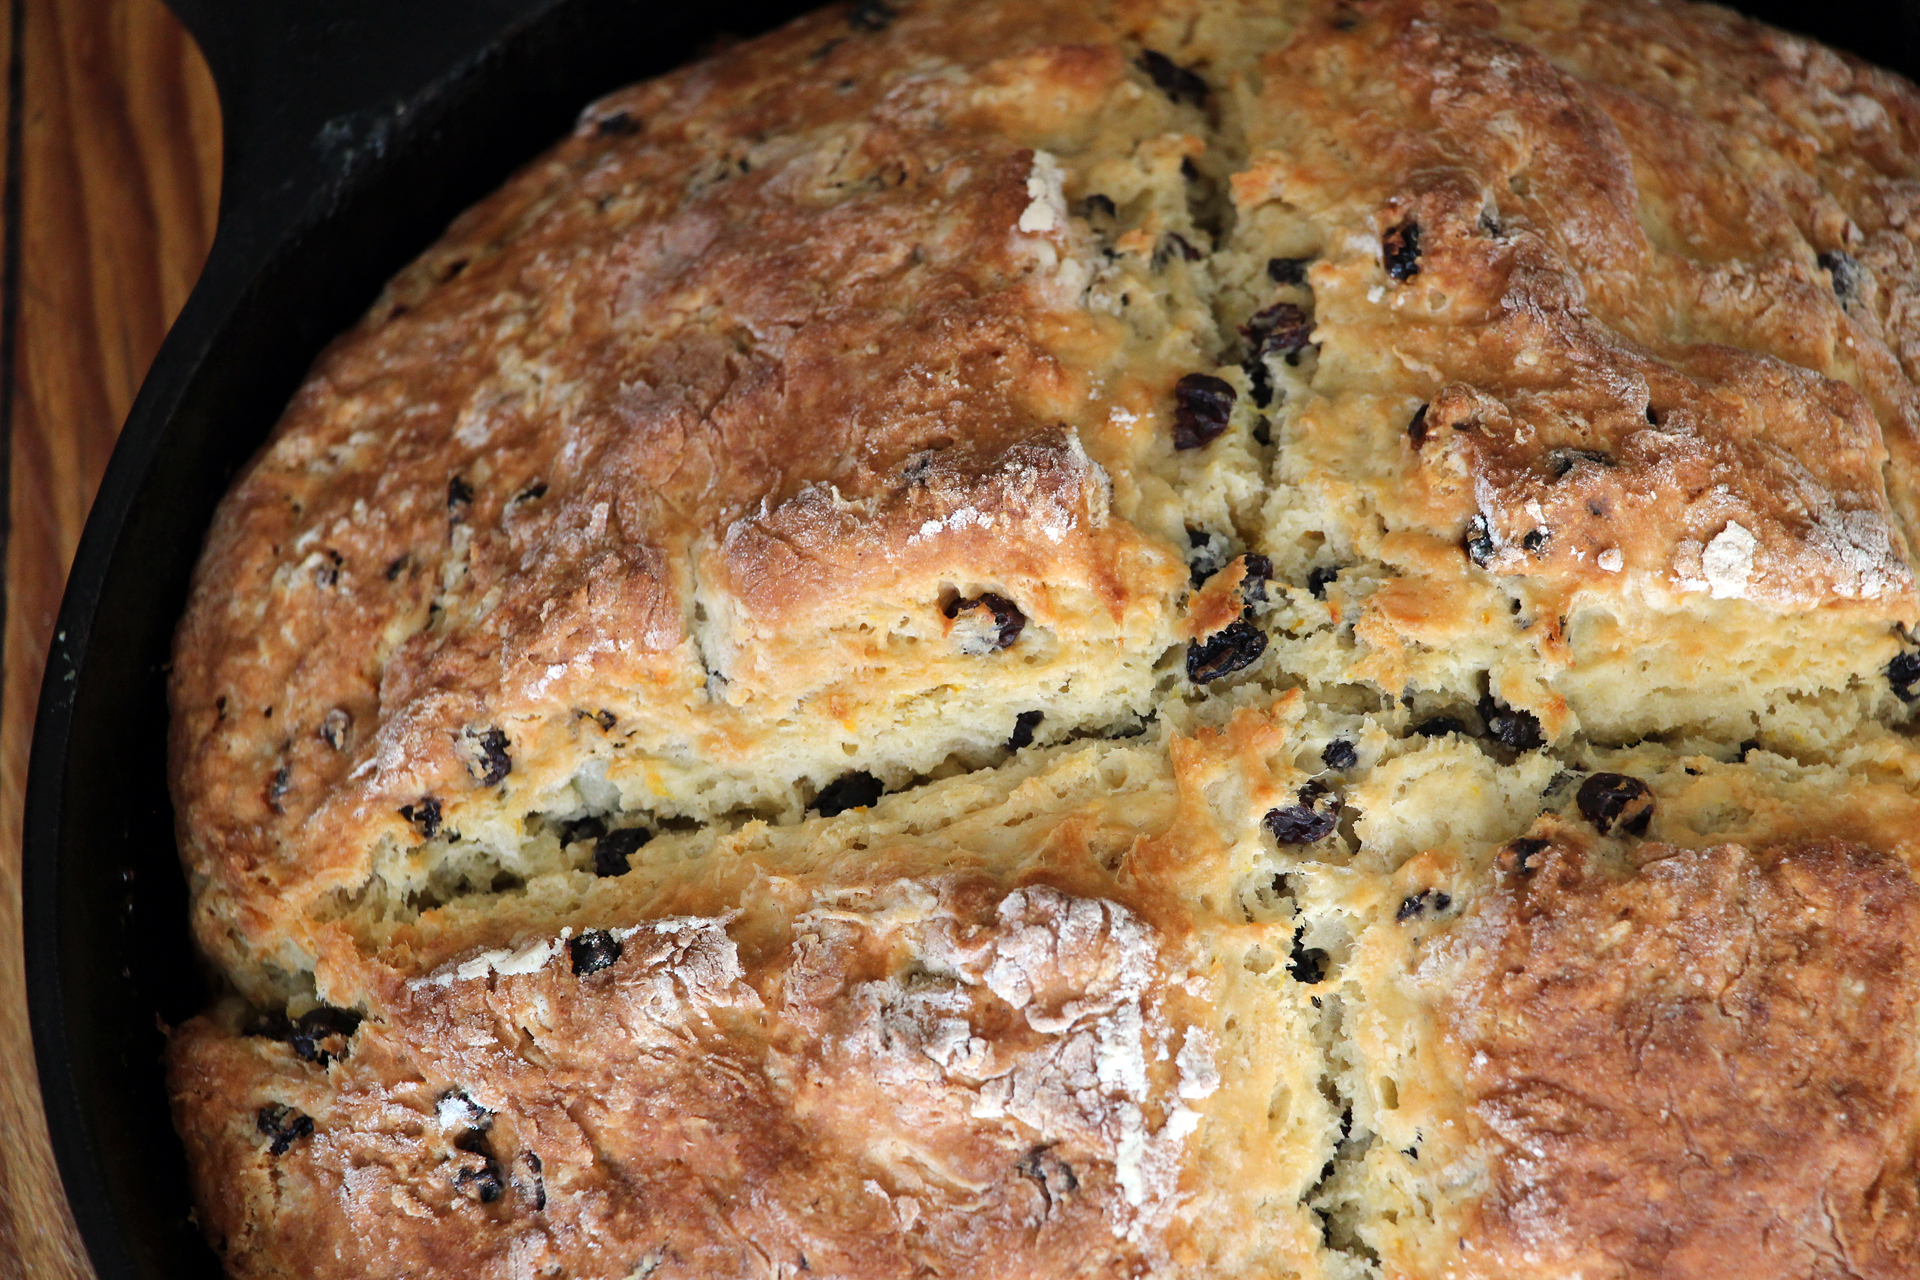 Irish-American Soda Bread with Currants and Orange Zest. Photo: Wendy Goodfriend